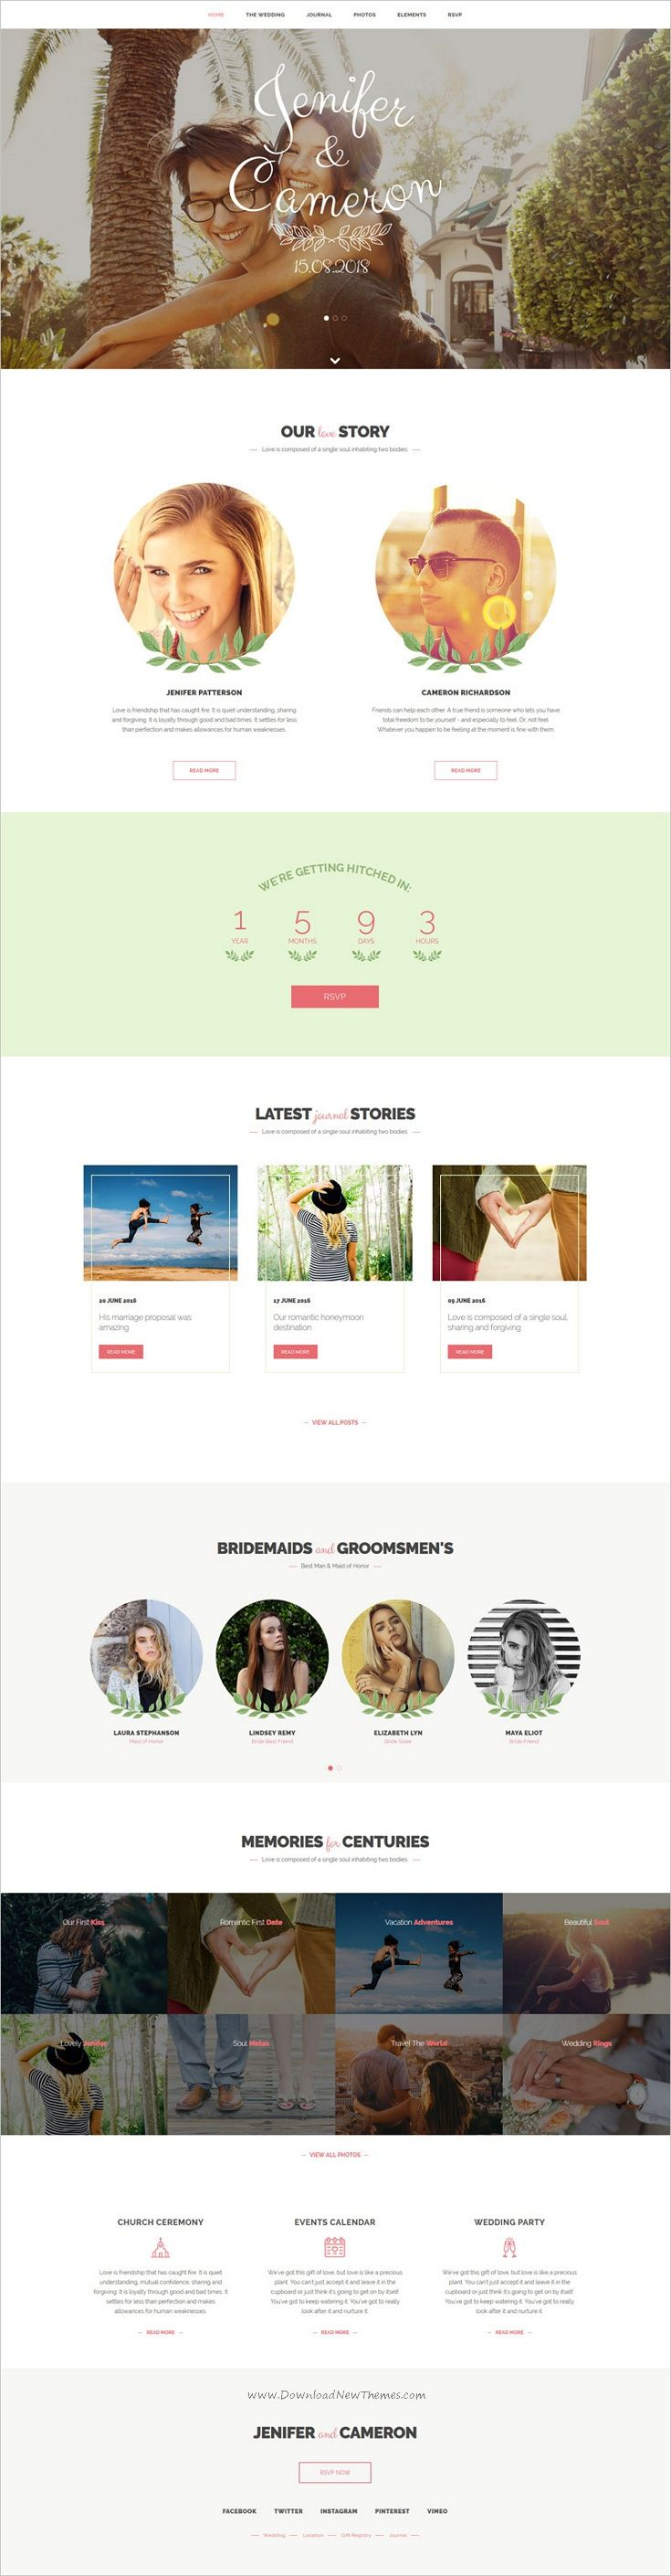 The wedding date is wonderful 6in1 #HTML #bootstrap theme for stunning #wedding website with RSPV, photo gallery, bridemades & groomsmans, wedding location, countdown to events dates download now➩ https://themeforest.net/item/the-wedding-date-responsive-wedding-html-template/19727160?ref=Datasata